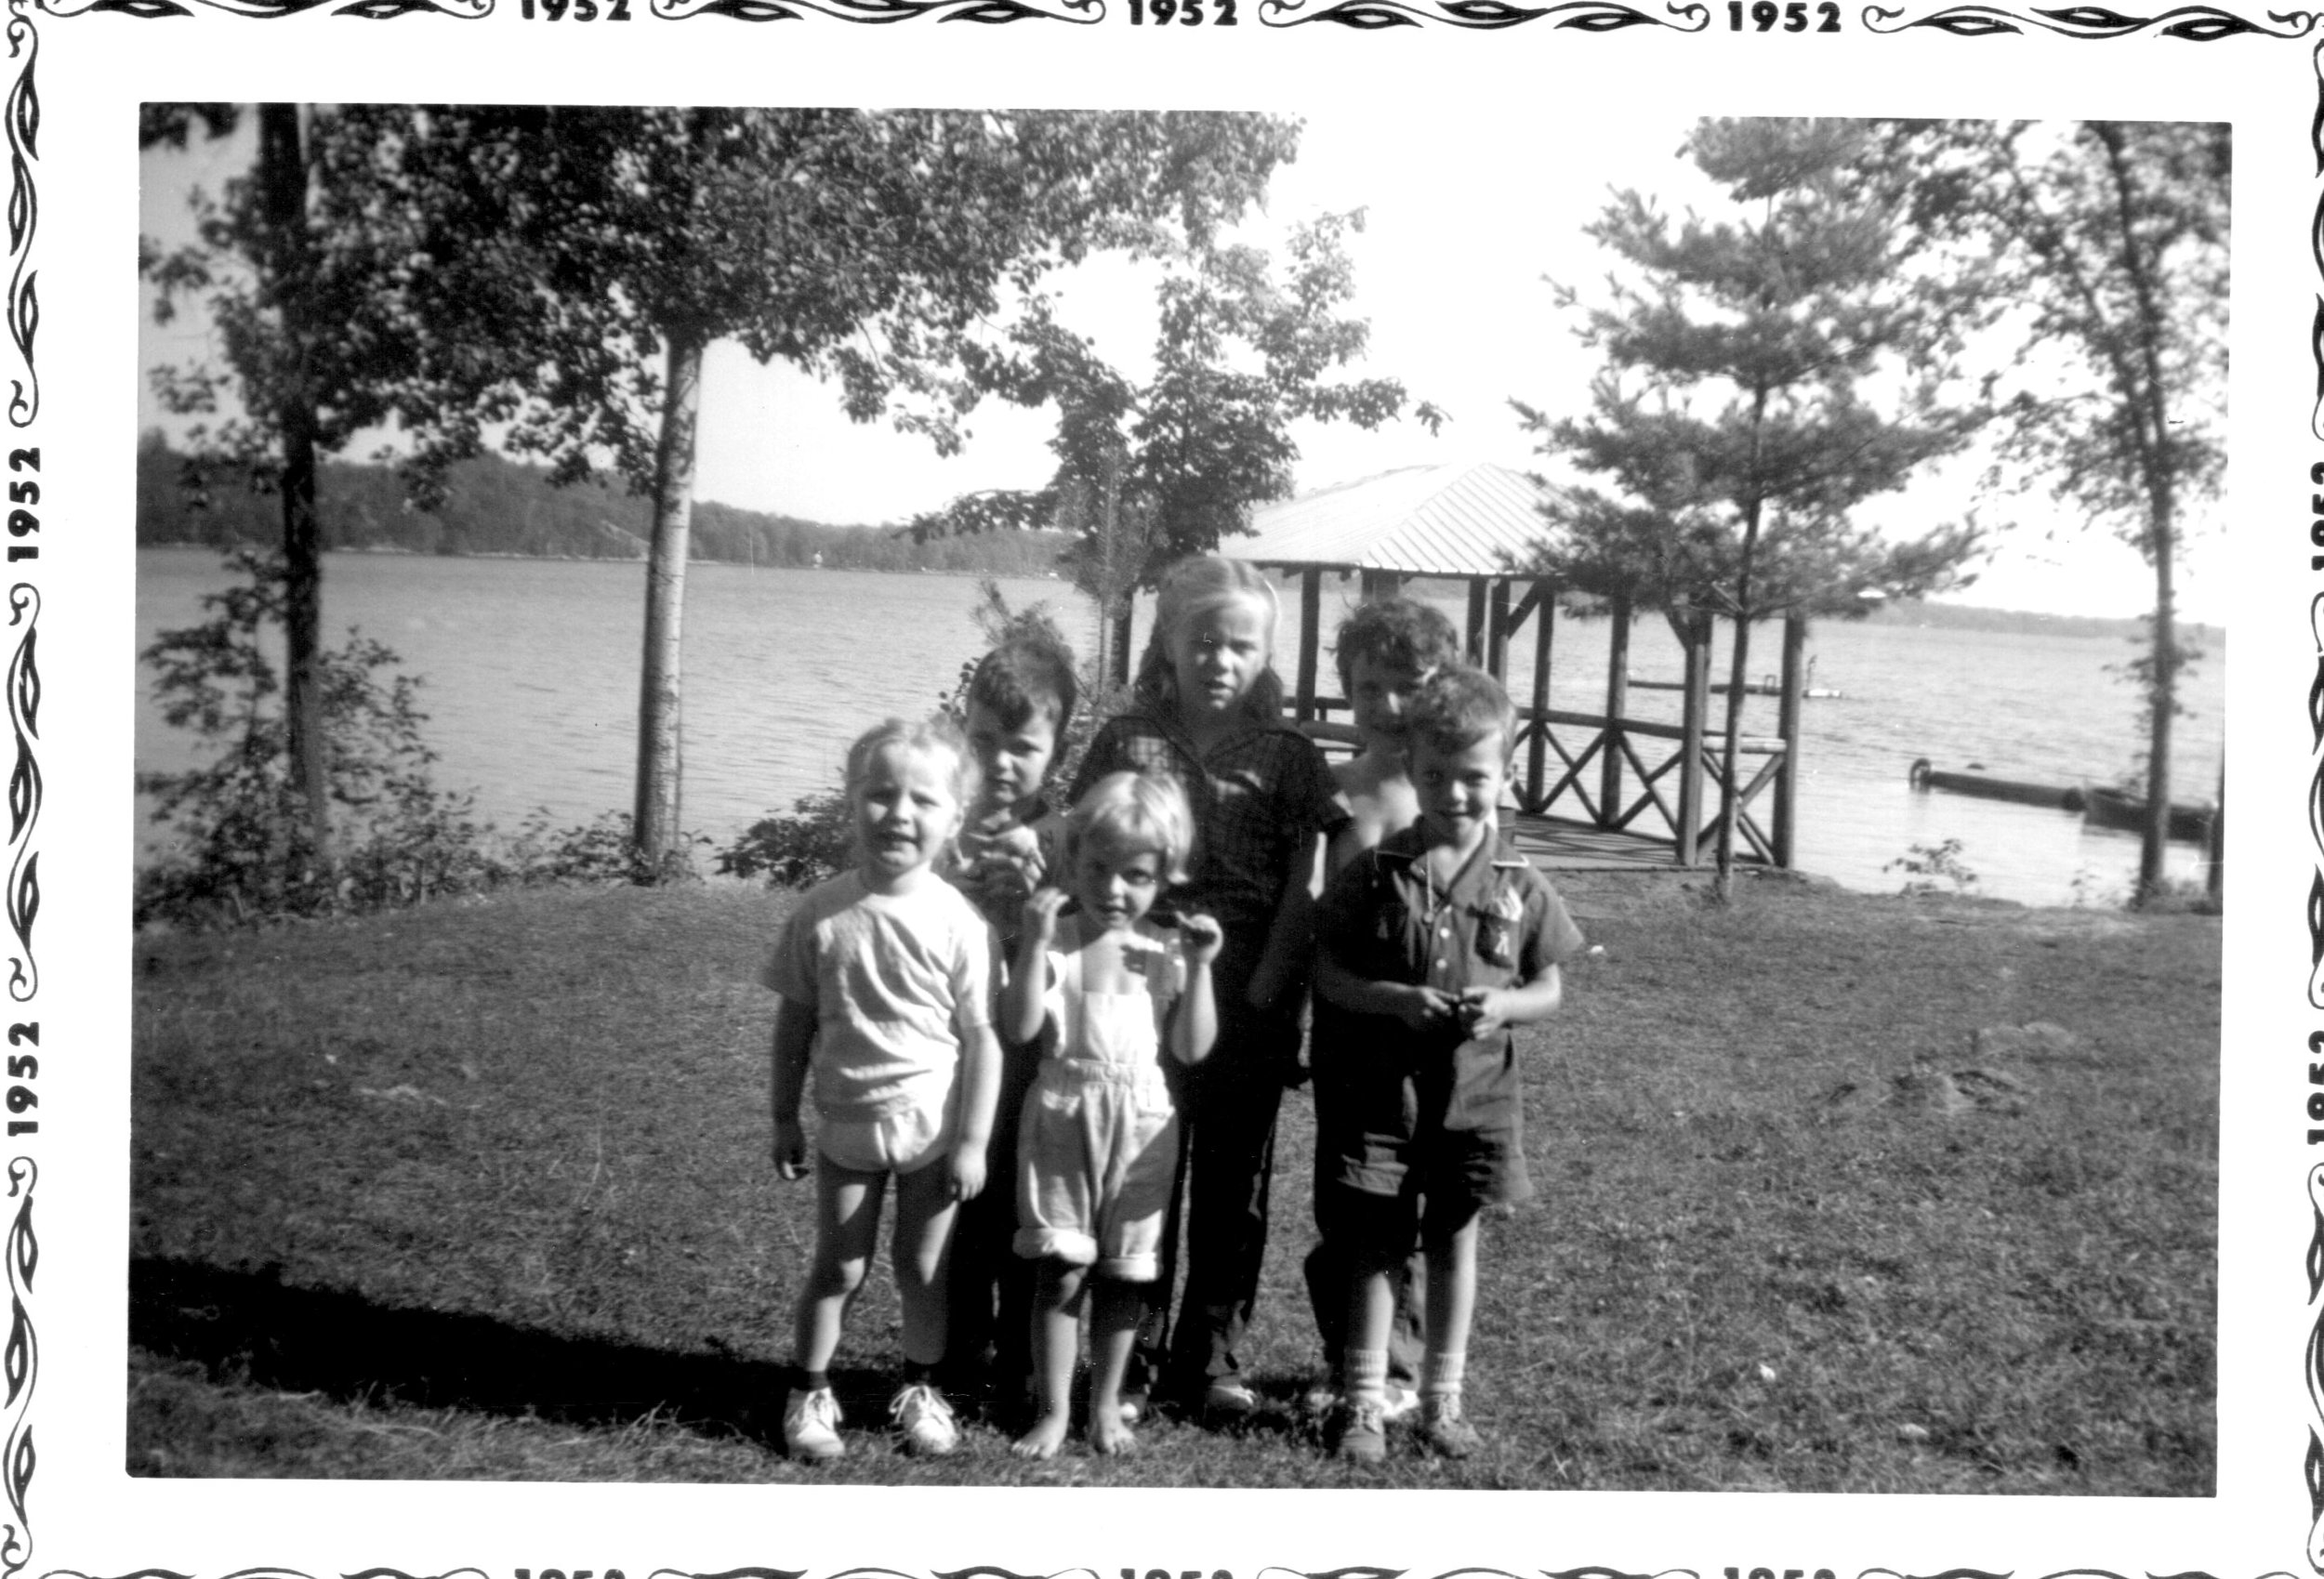 Front row - My sister Anne,Ann Barlow (Weese) and Brian (Pete) McCrodan Back row - Me and I don't recognize the other two peopl  Dan Brady wrote: Often went to Glen Allan back in those days for my birthday.Family and friends would spend the day there and in the days before sunscreen would come home with egg sized sunburn blisters on my shoulders. Those were the days!